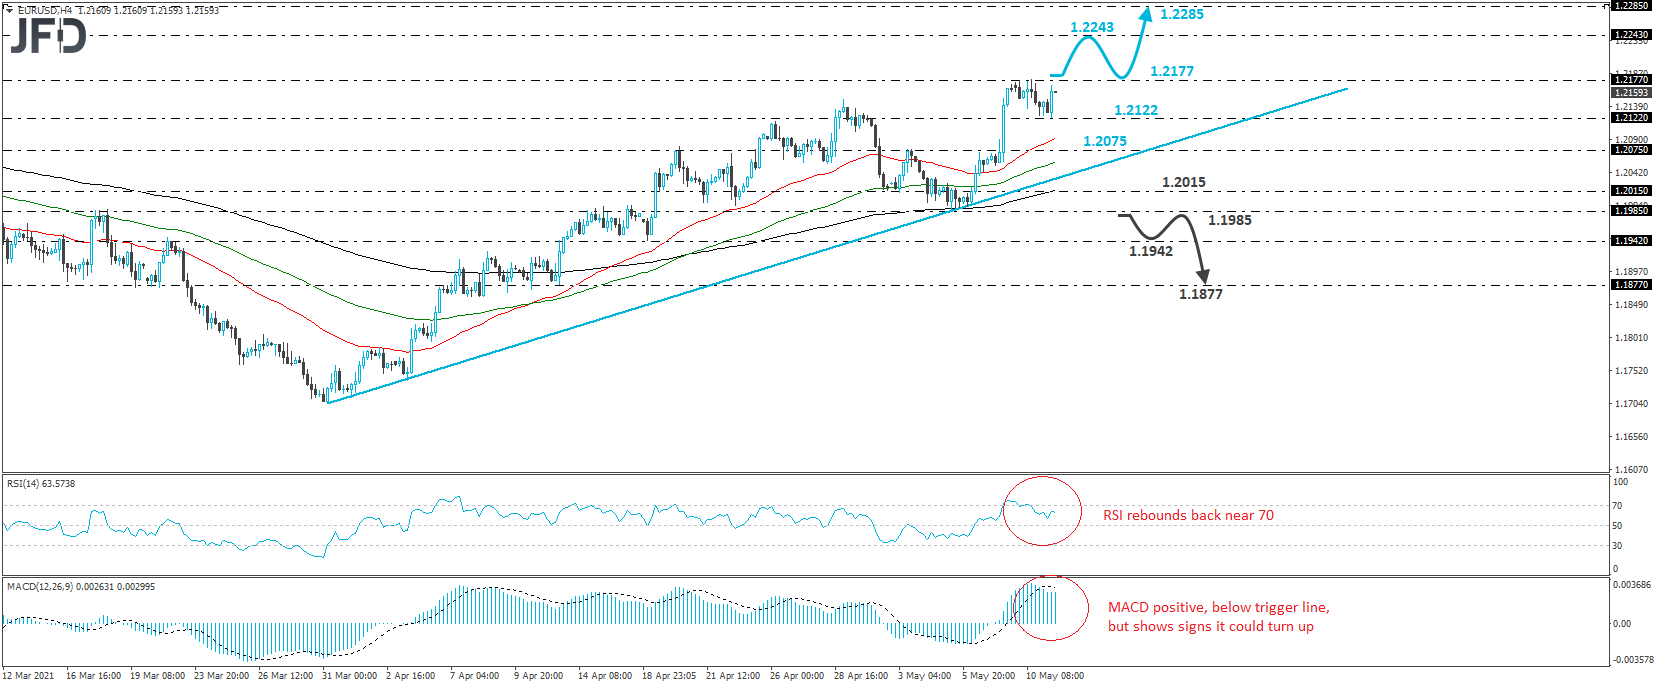 Will EUR/USD Go For A Higher High?